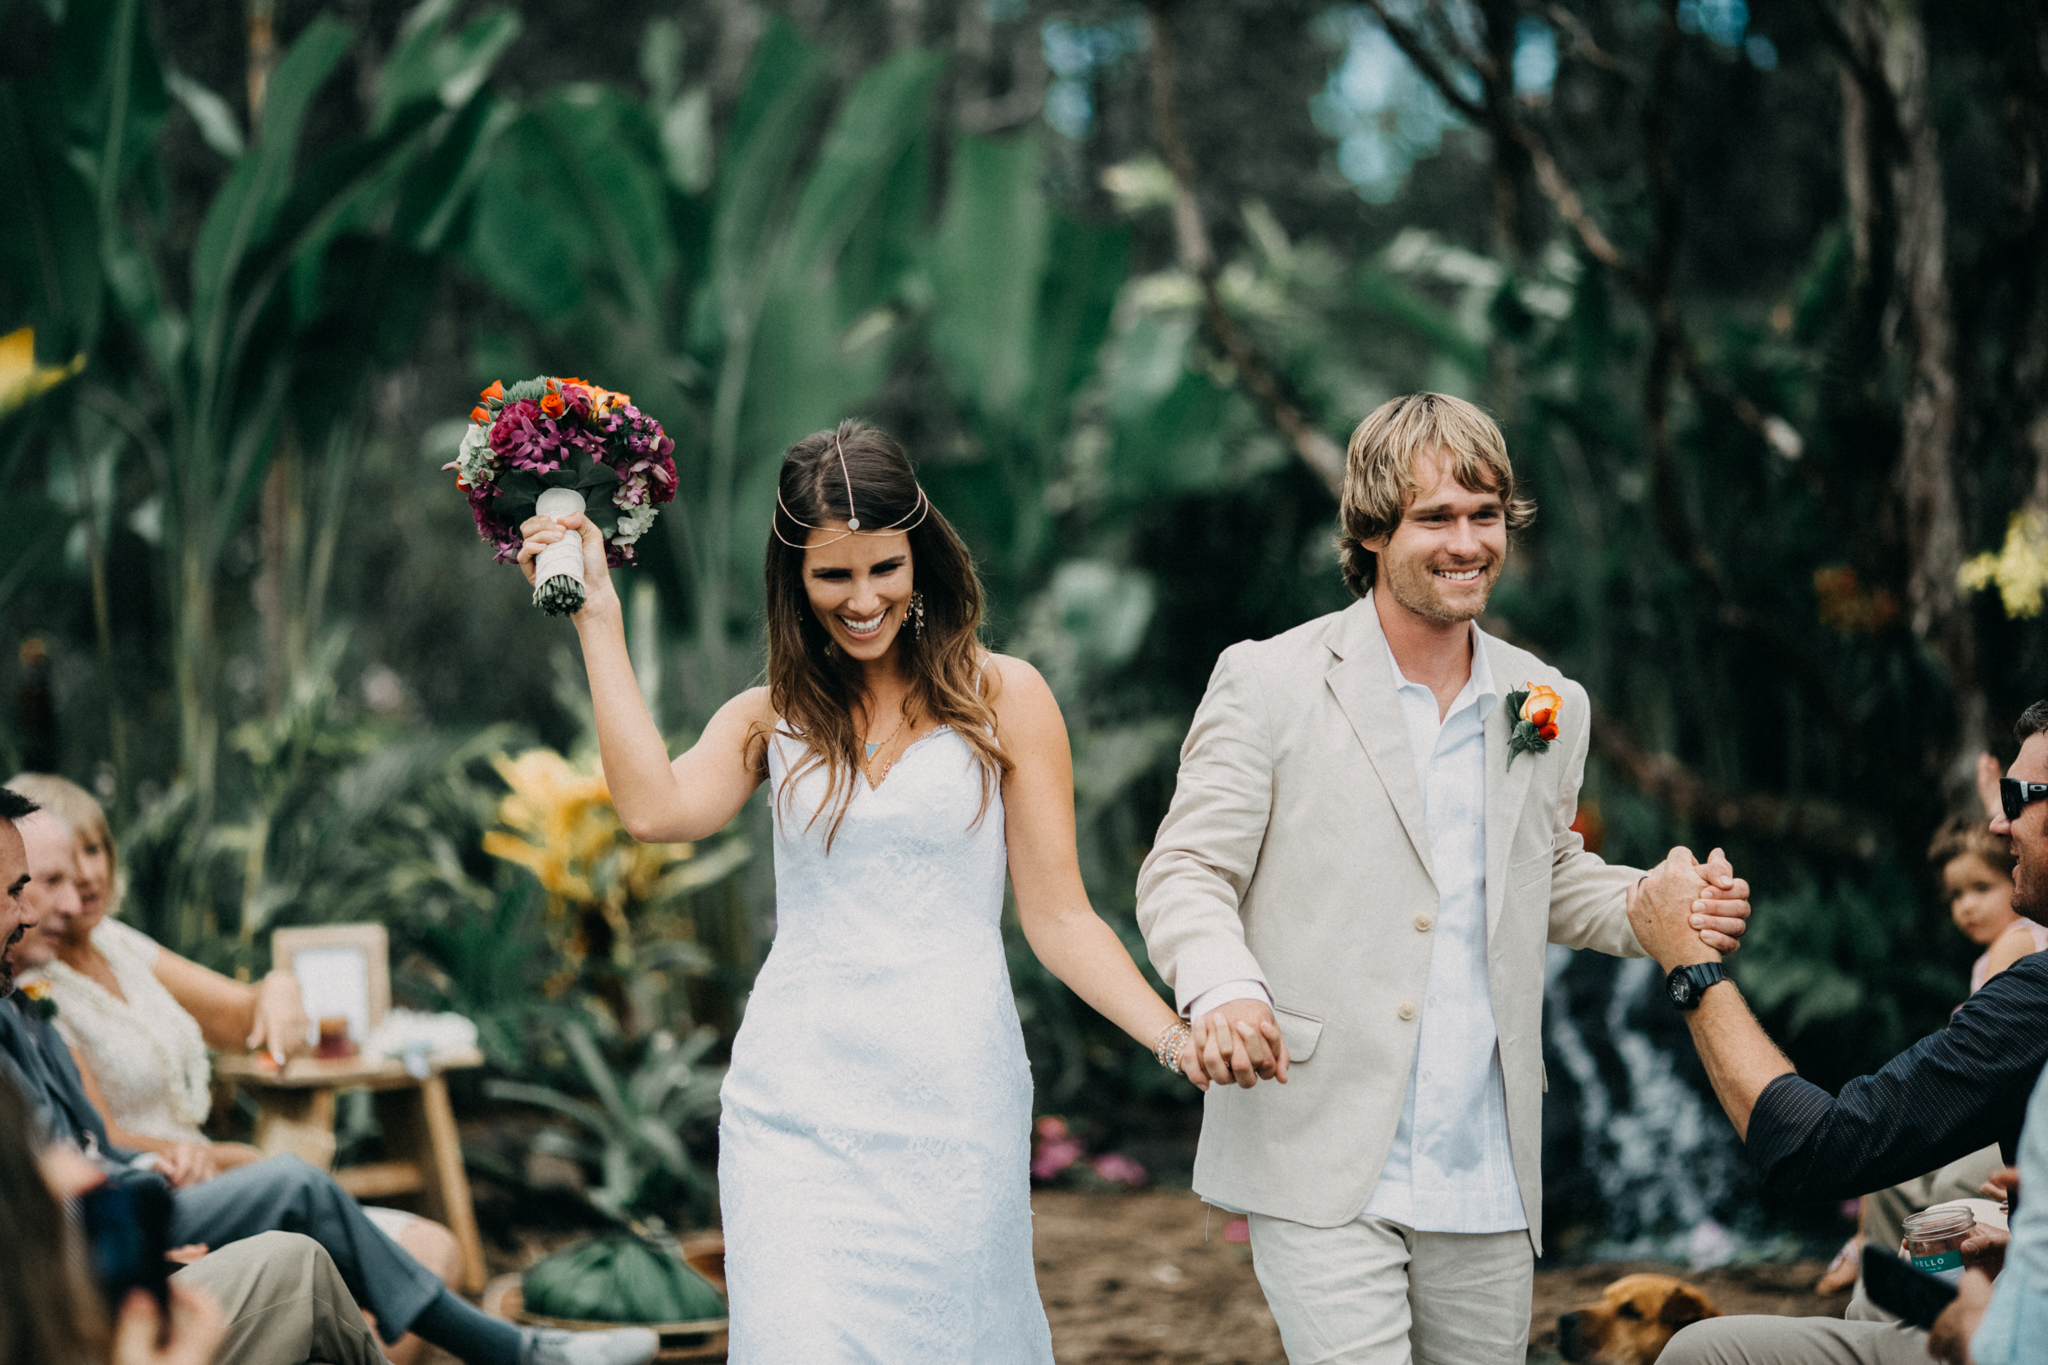 hawaii destination wedding photographer hilo keeau home virginia harold backyard hawaiian-7.jpg